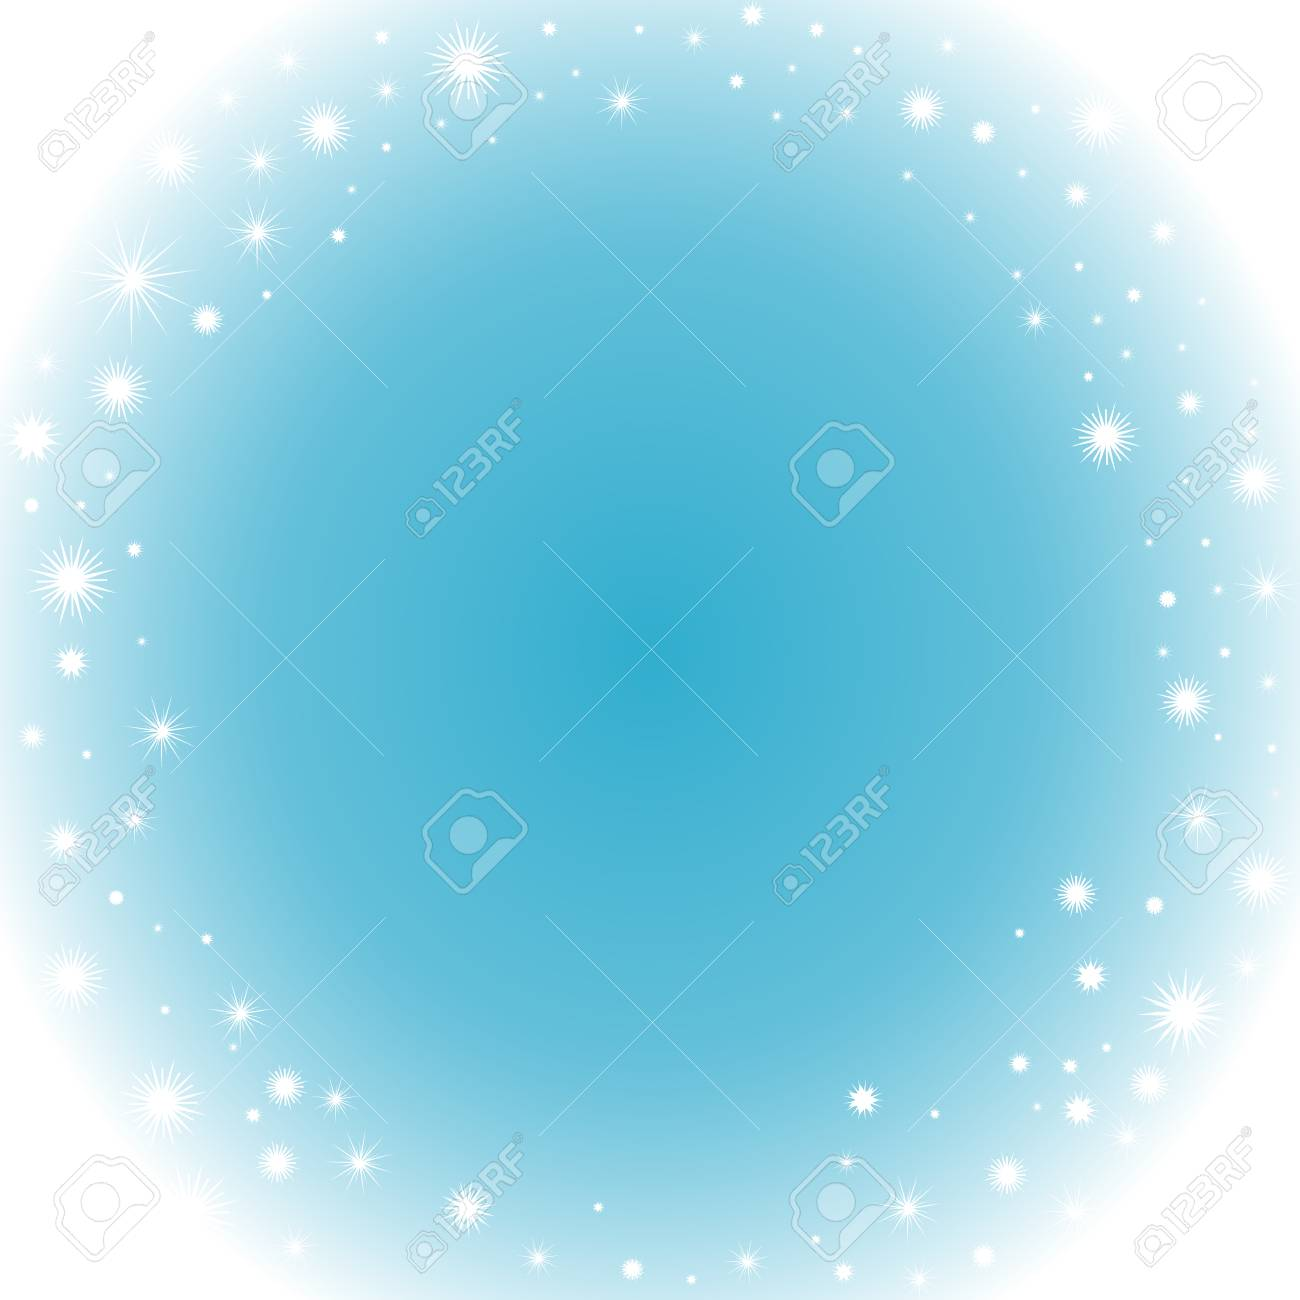 happy new year and merry christmas frozen vector background with snowflakes stock vector 48490617